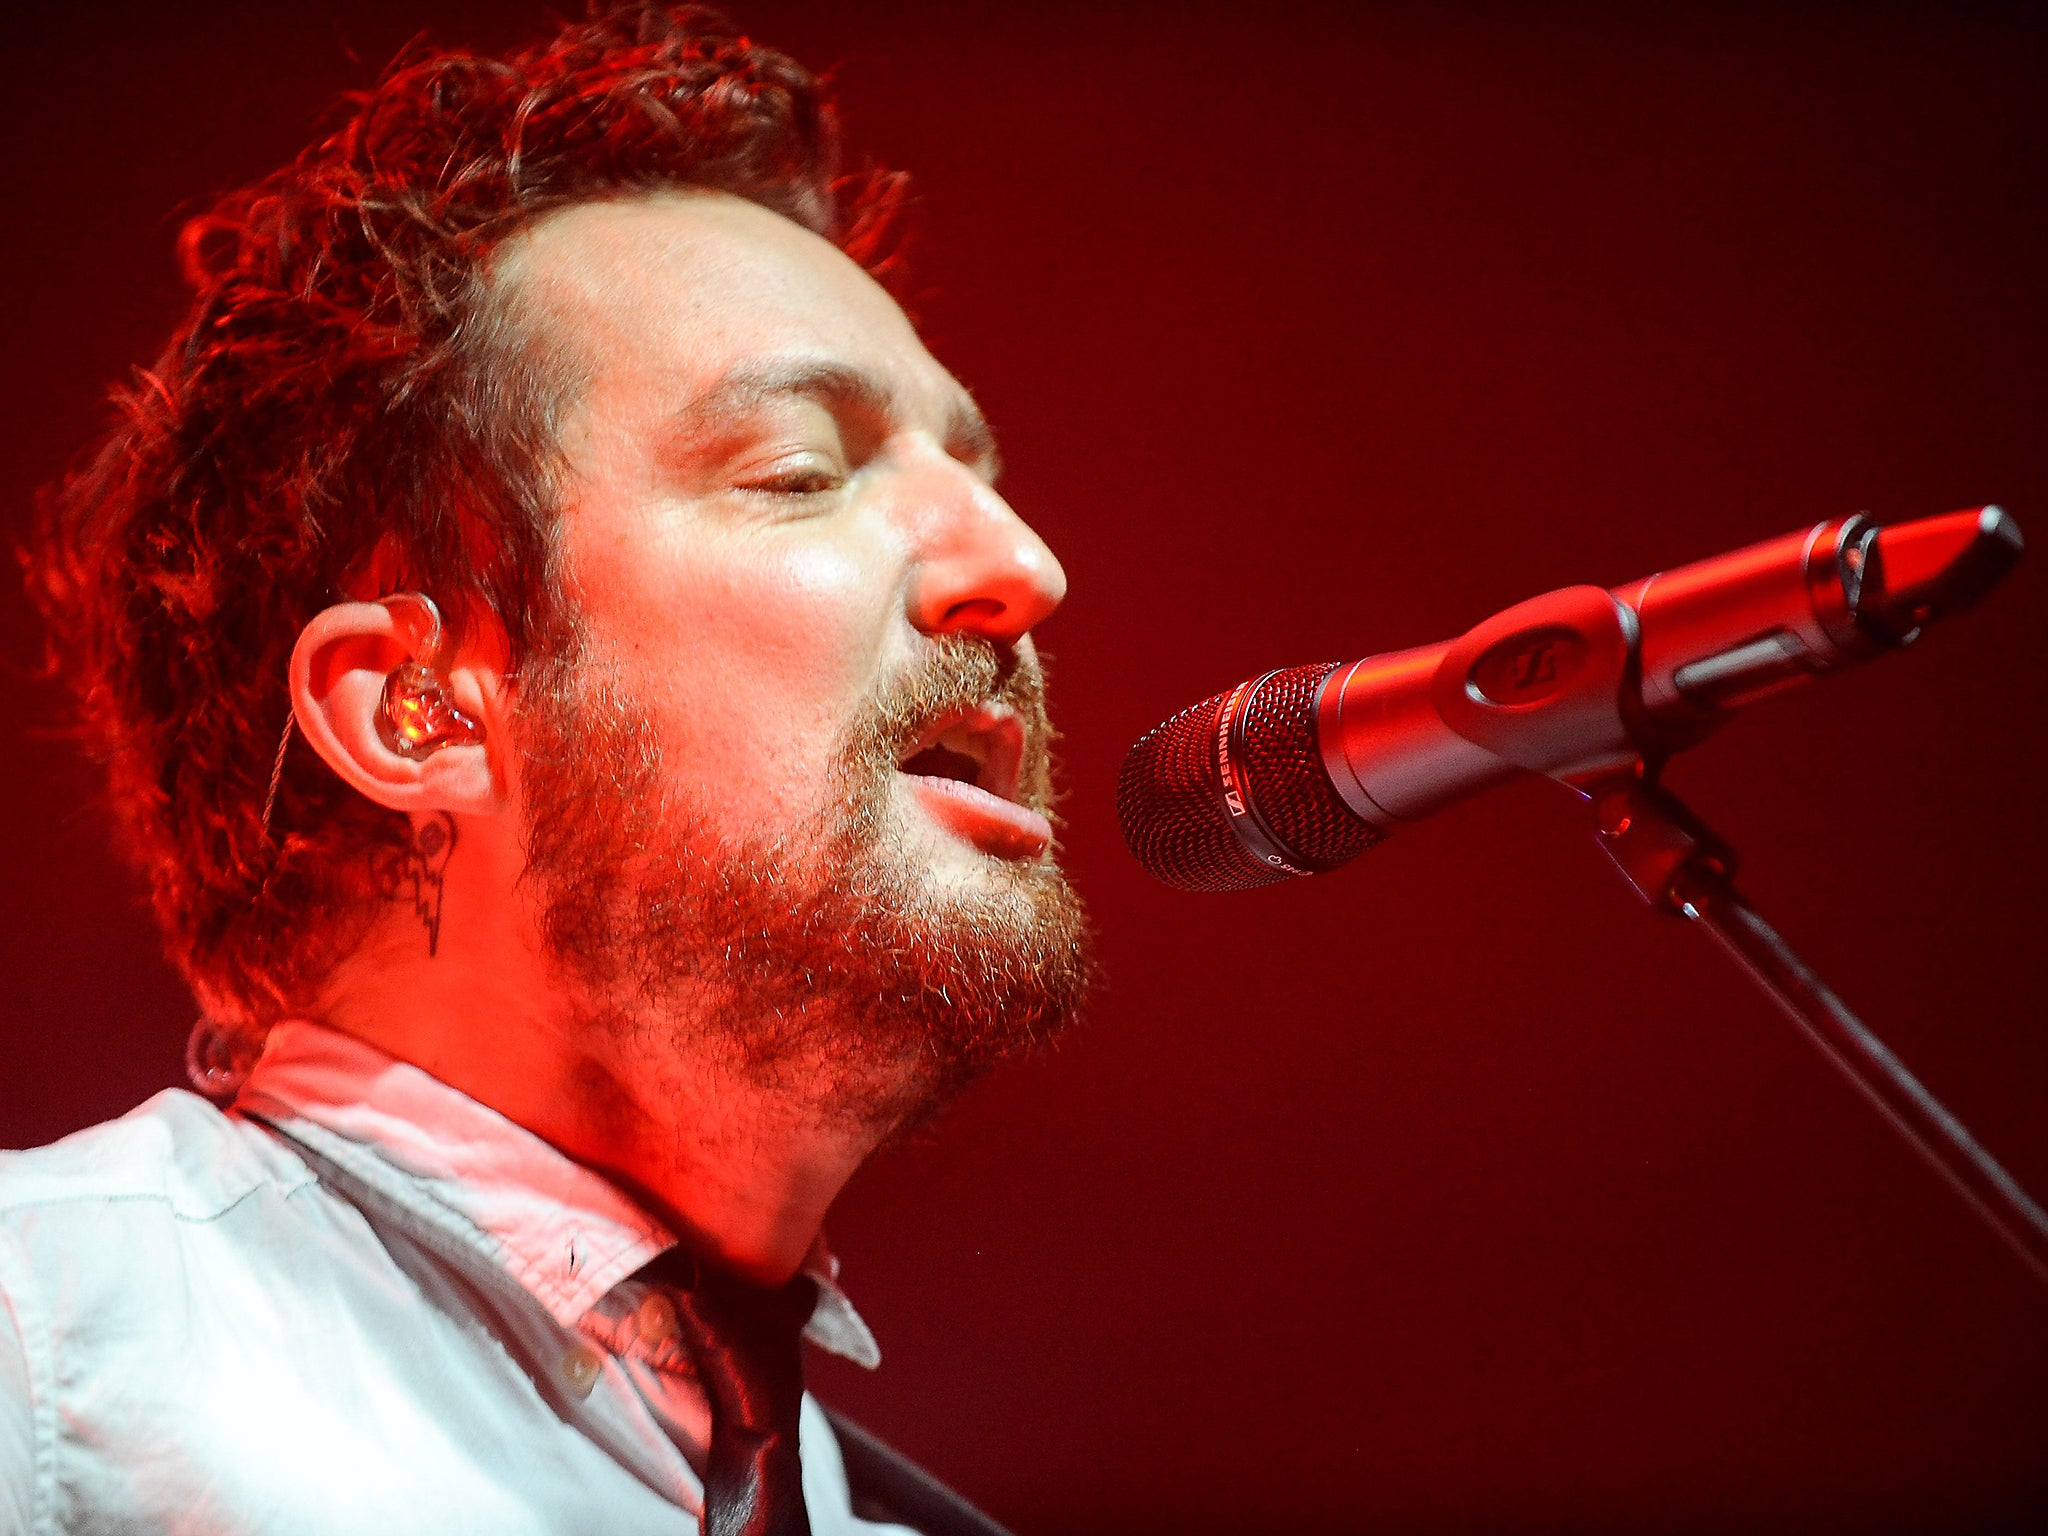 Frank Turner review, No Man's Land: More a case of extreme mansplaining